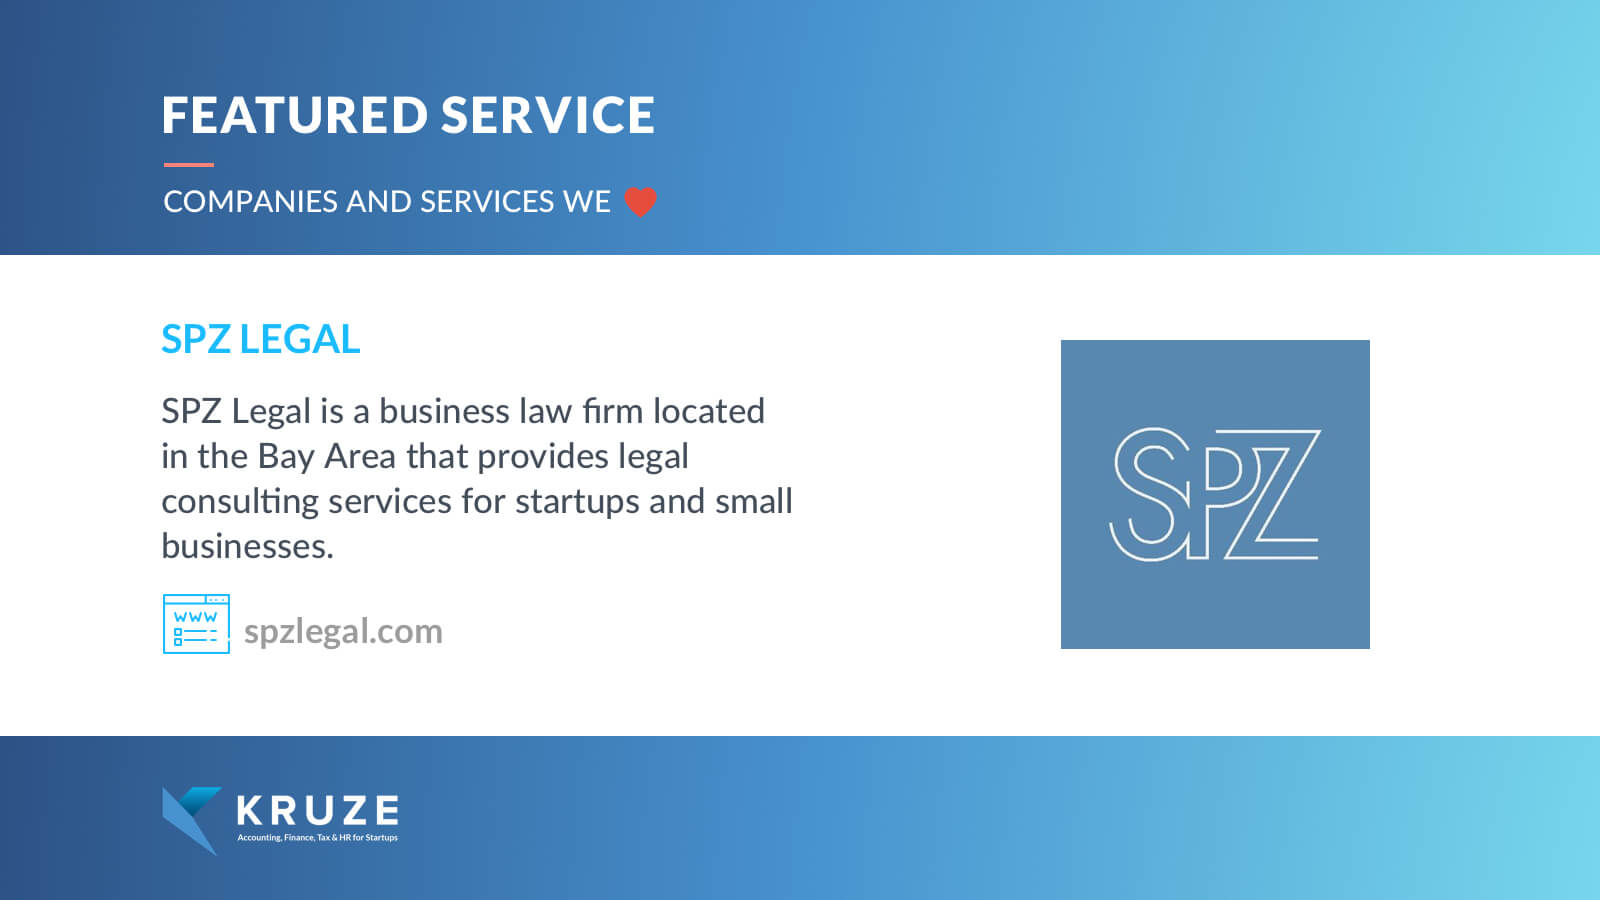 Featured Service - SPZ Legal